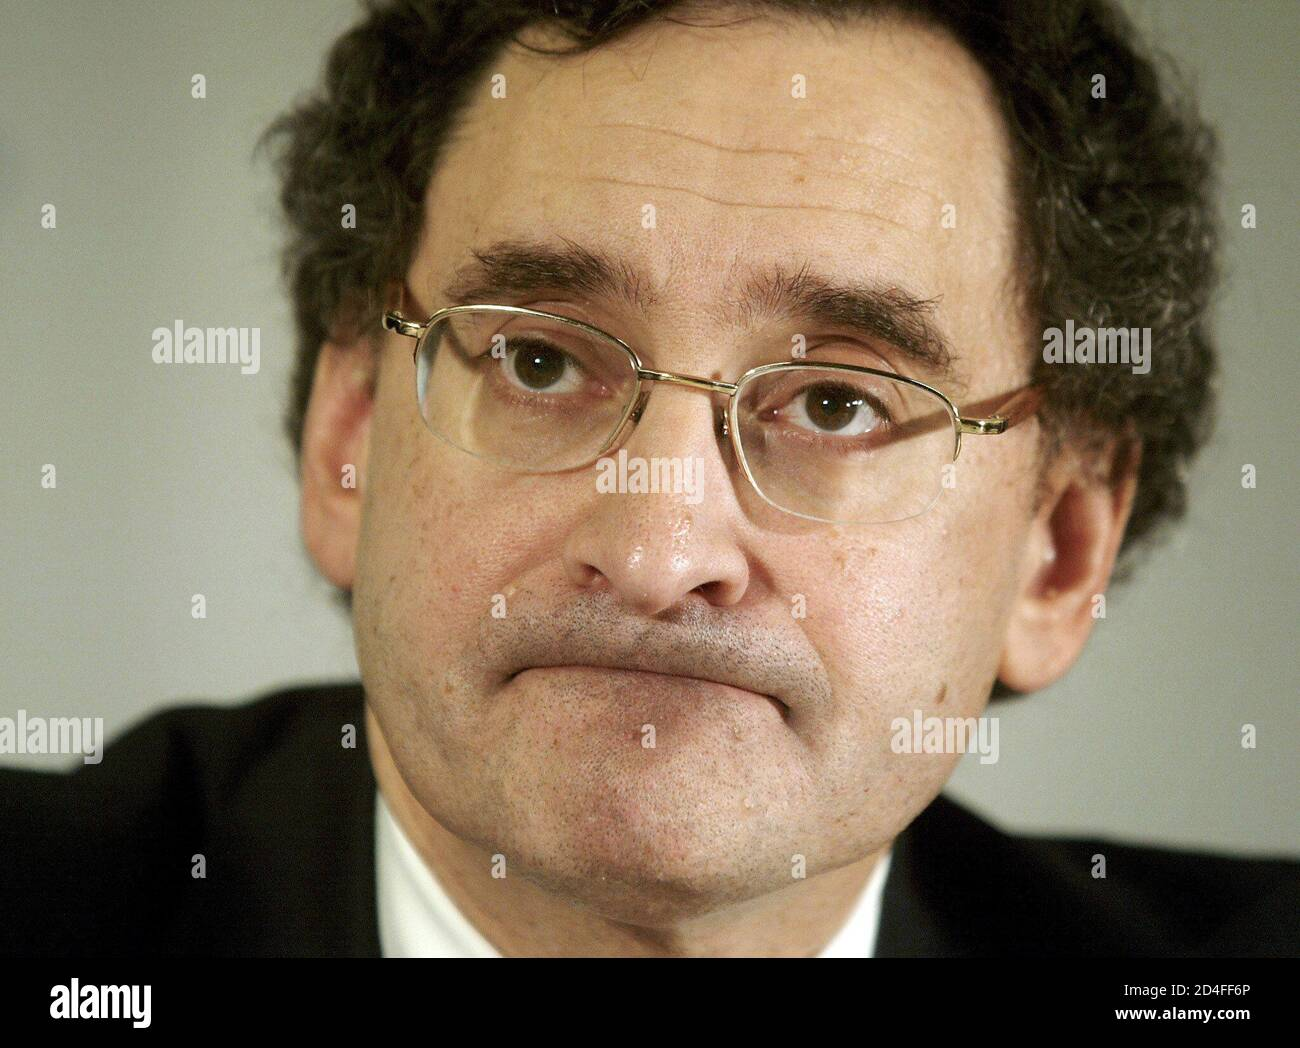 Bell Canada Enterprises President and Chief Executive Officer Michael Sabia contemplates a question during the press conference May 29, 2002. The press conference was held after Bell Canada Enterprises' Annual Meeting of the Shareholders in Montreal. Stock Photo